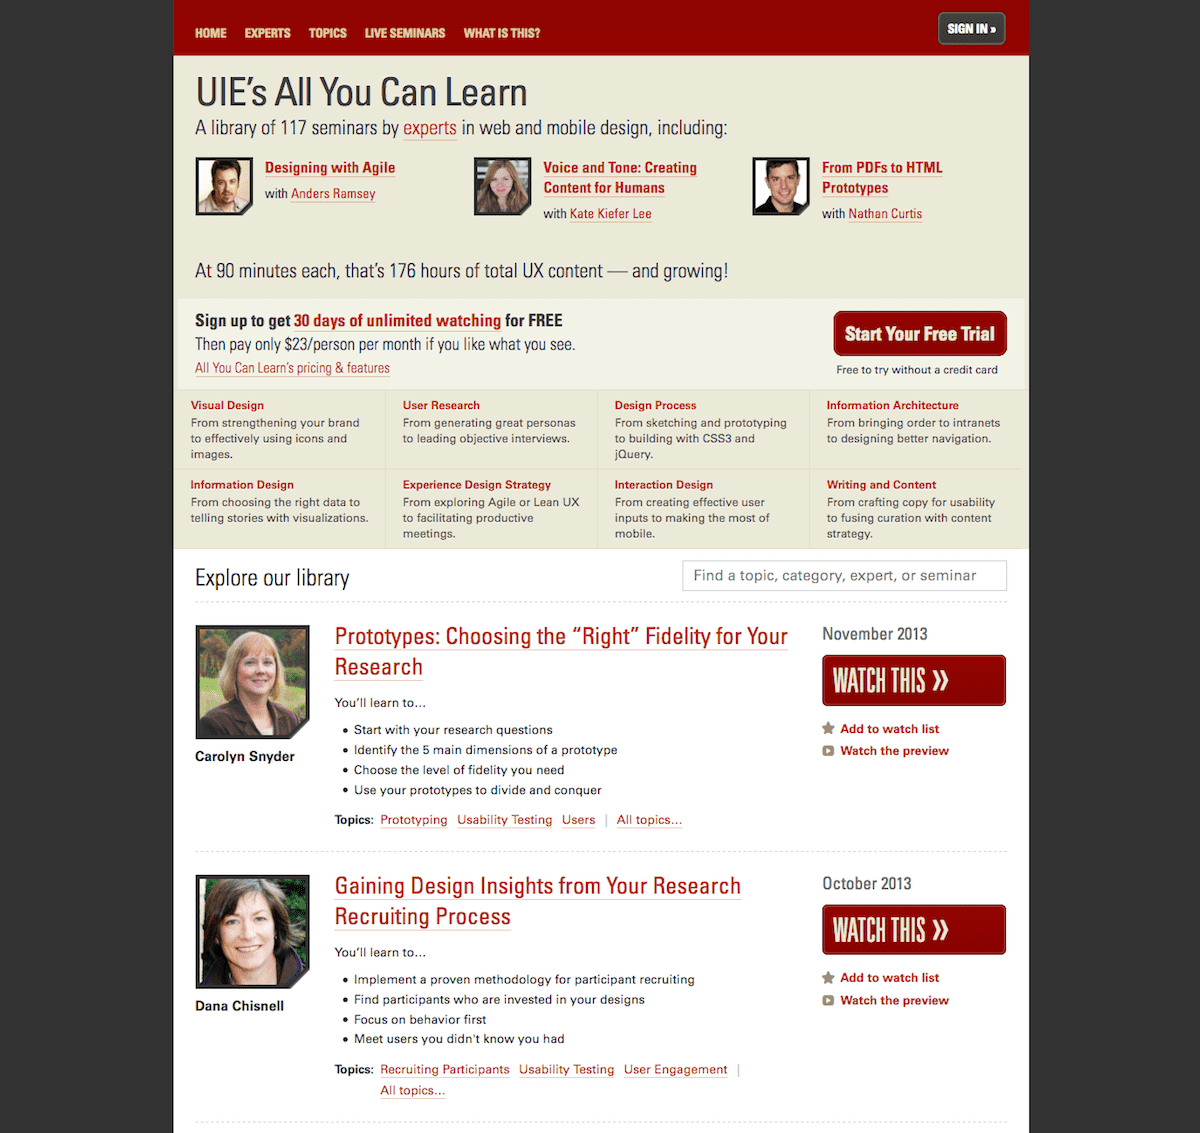 Screenshot of v1 homepage at launch